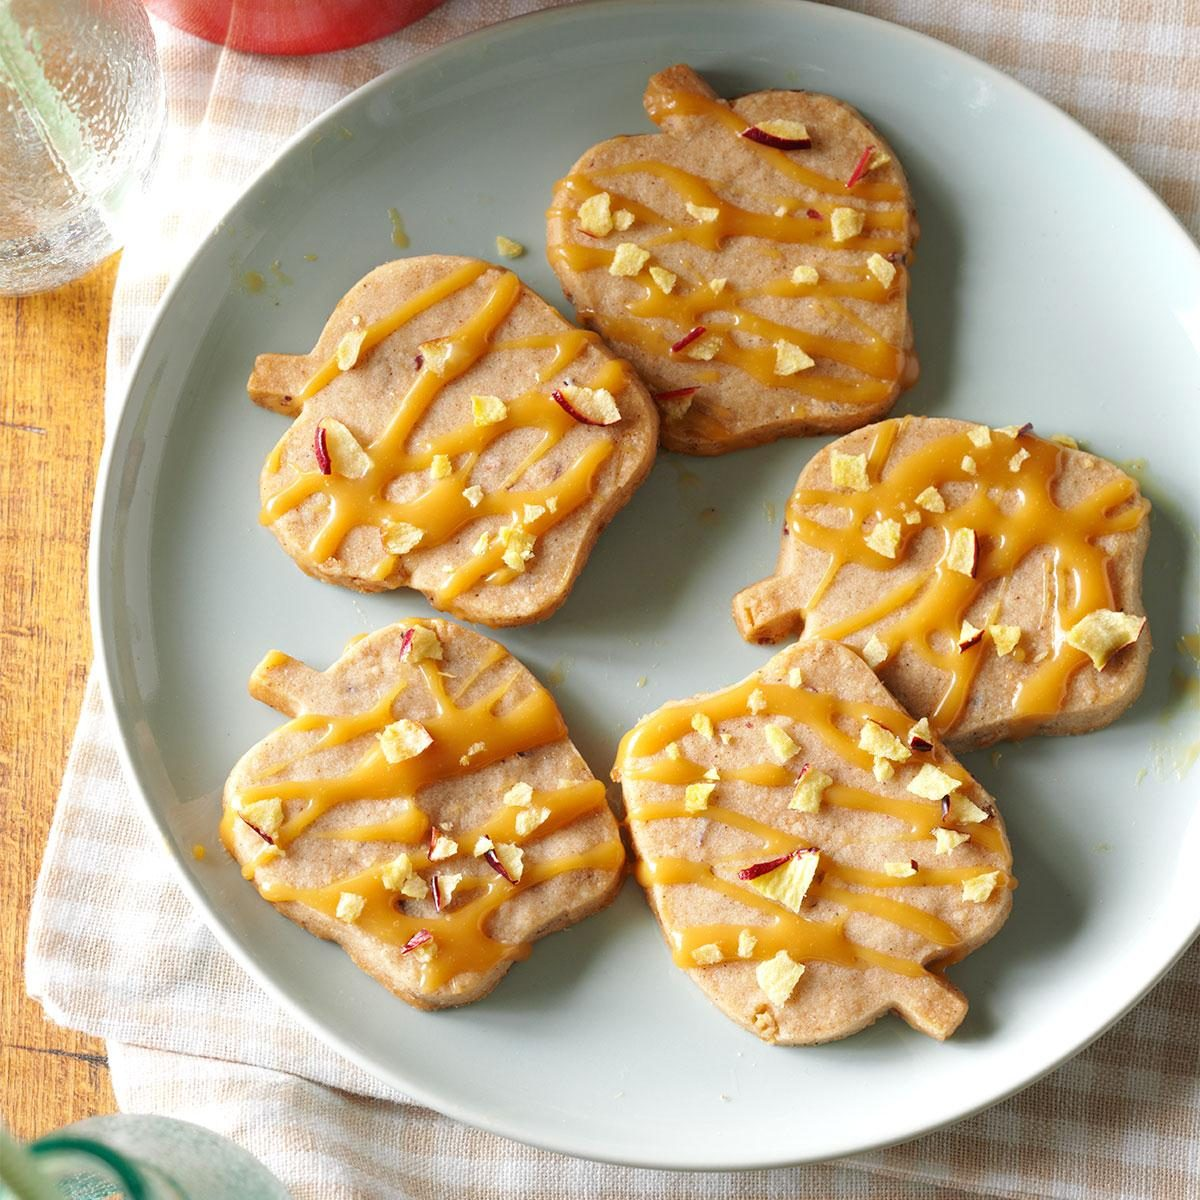 Caramel-Apple Shortbread Cookies